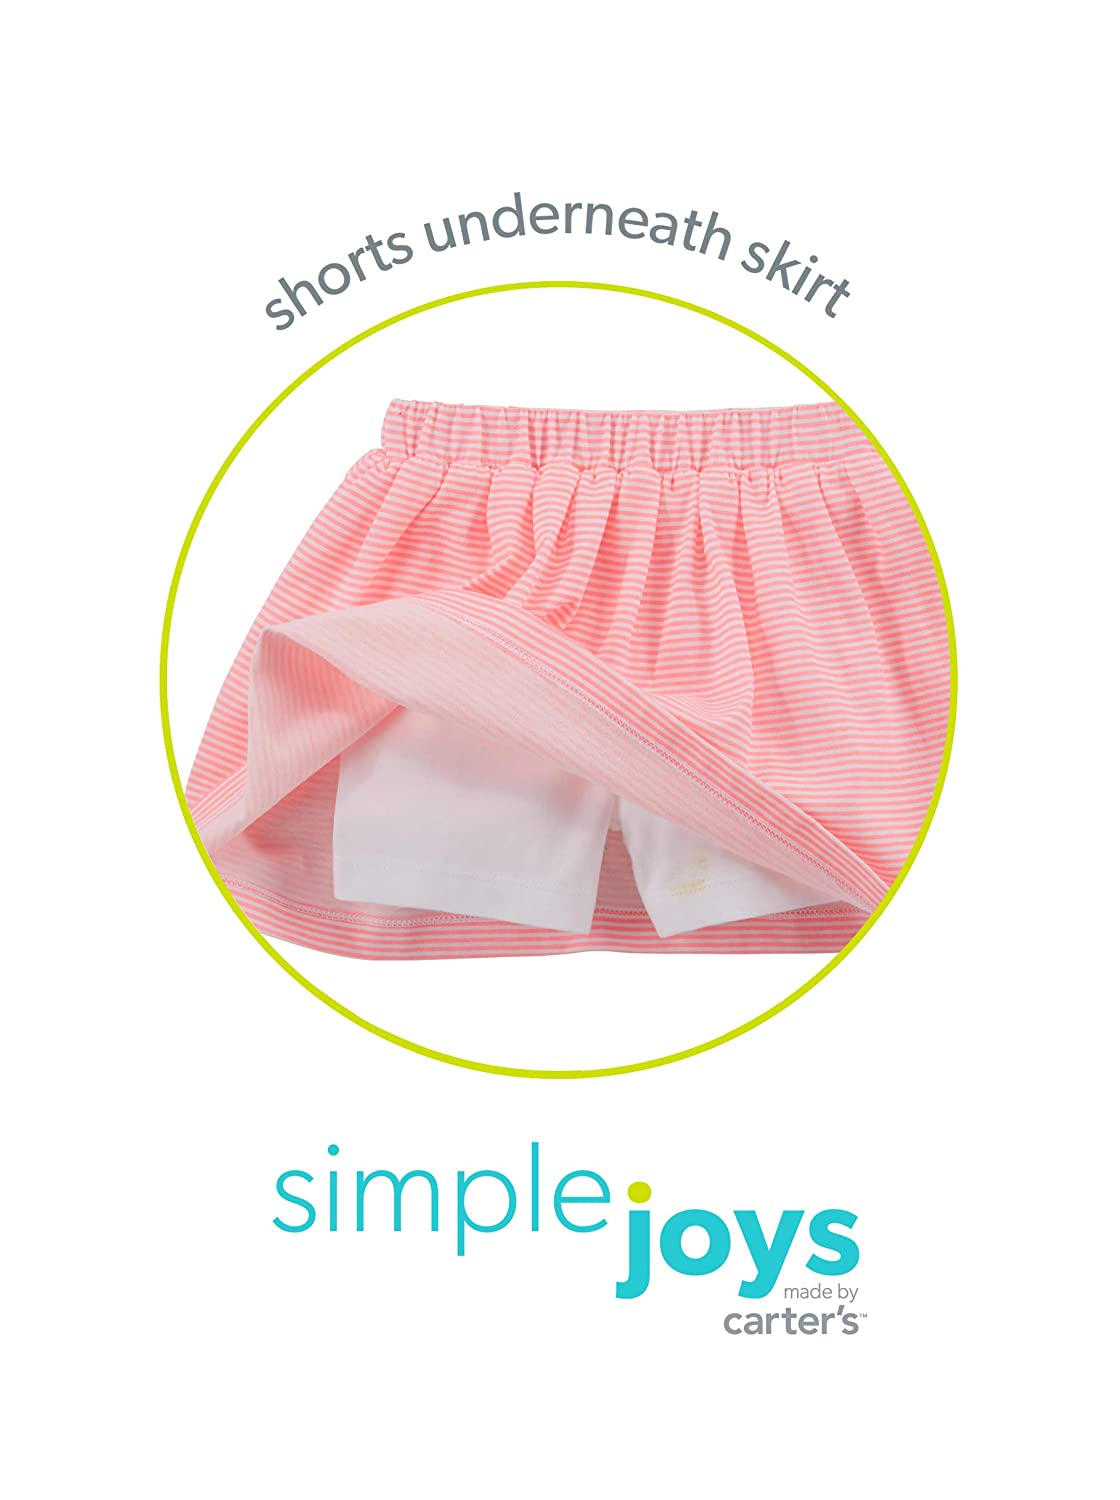 Simple Joys by Carters Toddler Girls 2-Pack Knit Scooters Carter/'s Simple Joys Private Label 2PKSCOOTER skirt with built-in shorts